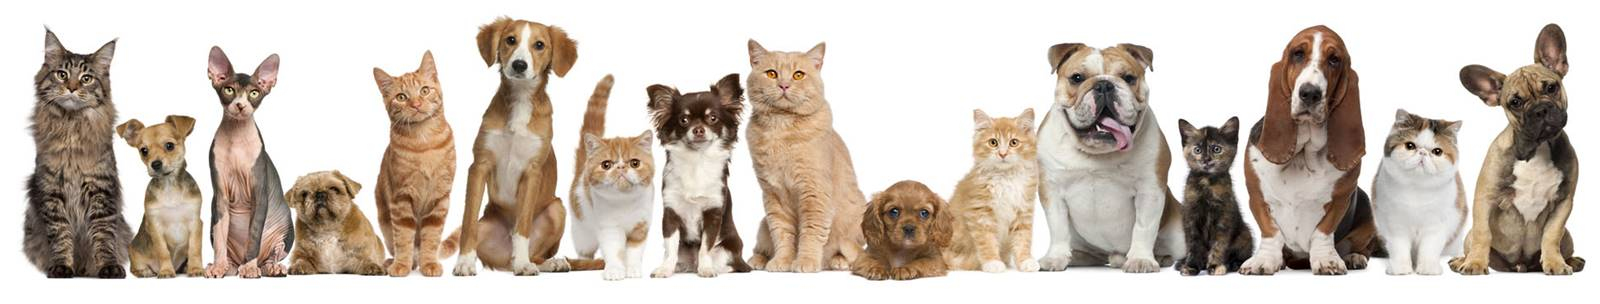 Pet Breeders Wichita Kansas - Local Pet Breeders com Wichita